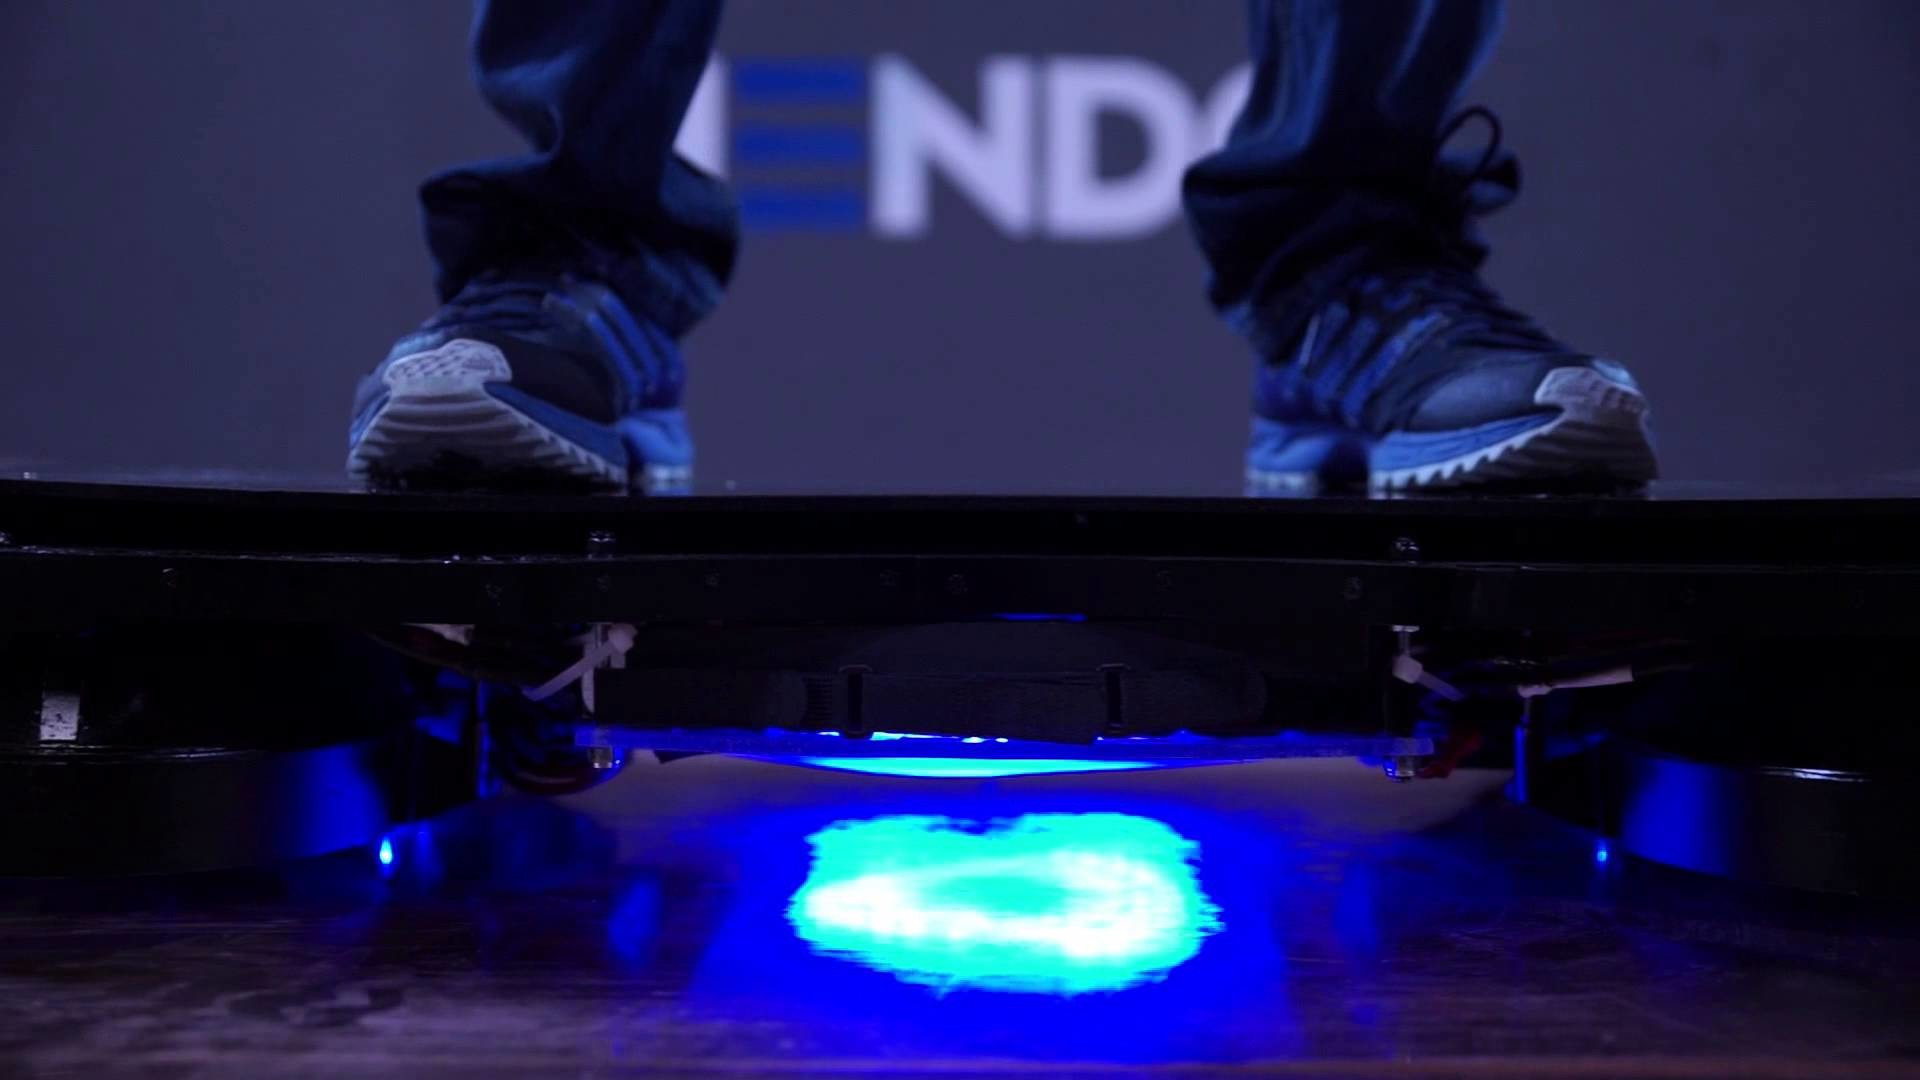 1920x1080 Hendo Hoverboard: The World's First Hoverboard - YouTube